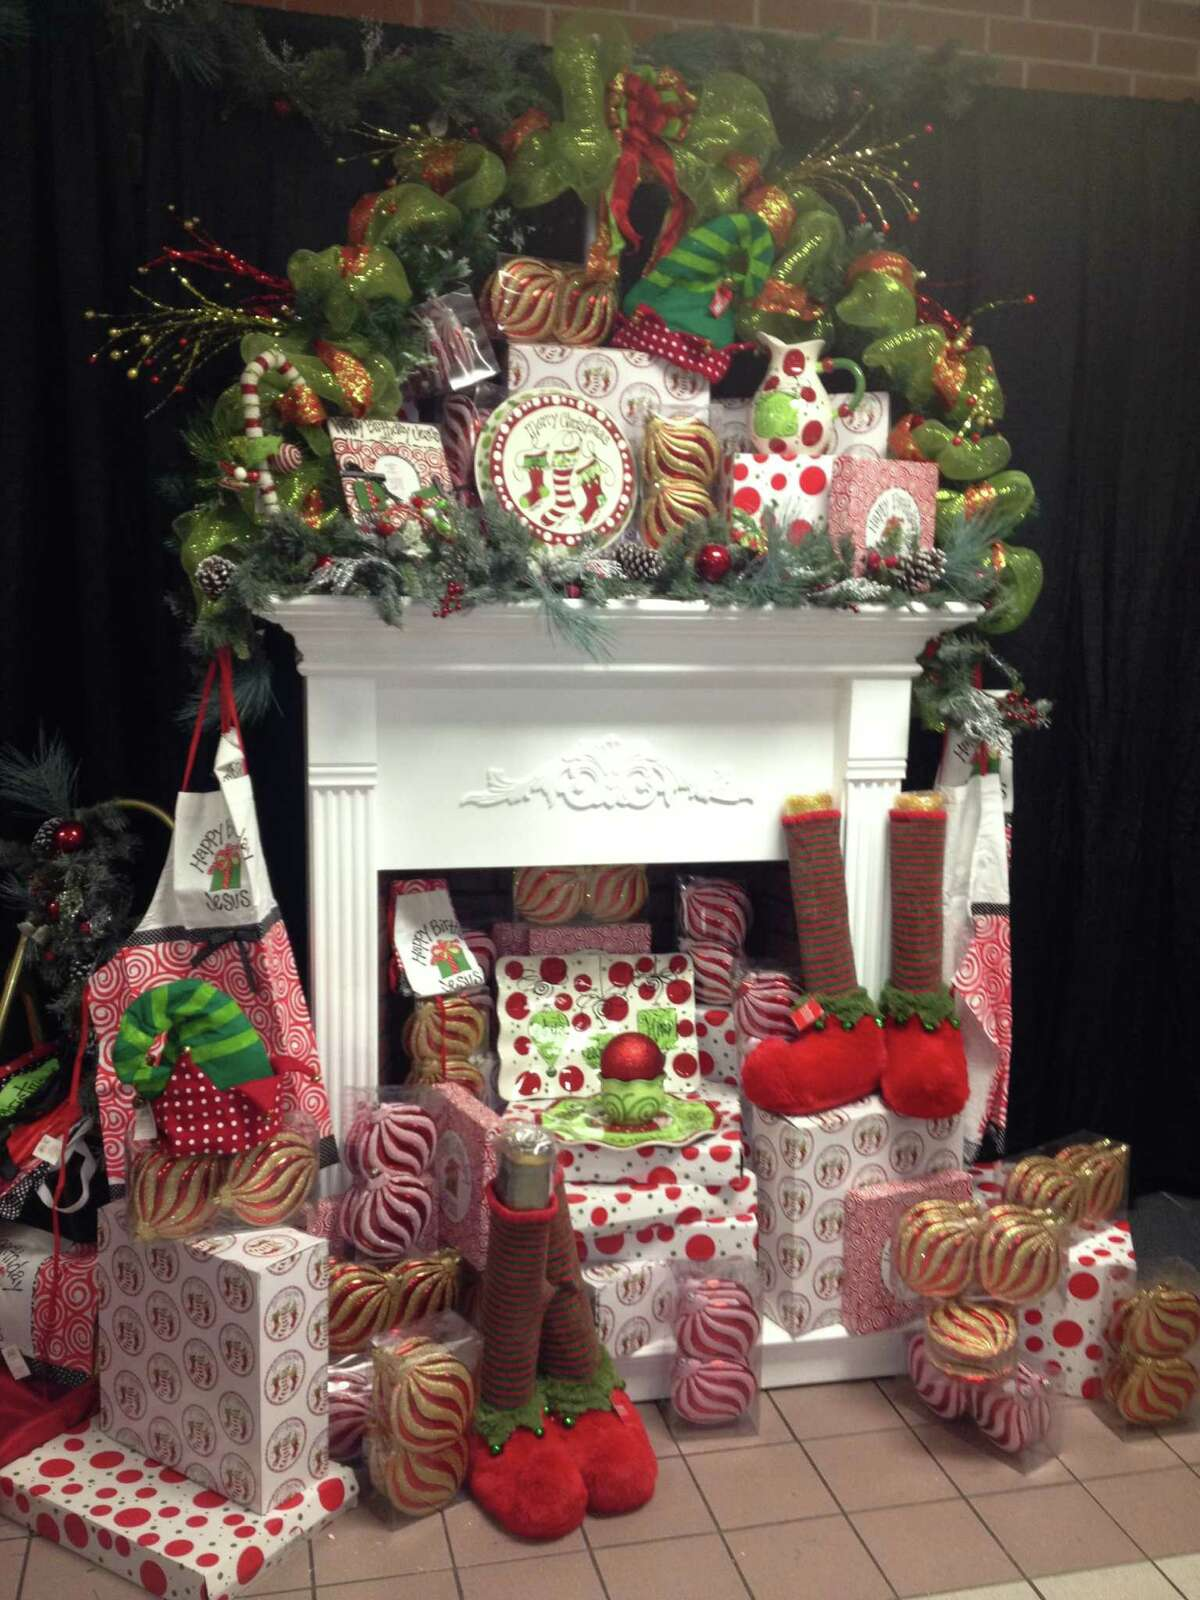 Home for the Holidays Gift Market will be Nov. 21-23 at the Merrell Center in Katy.